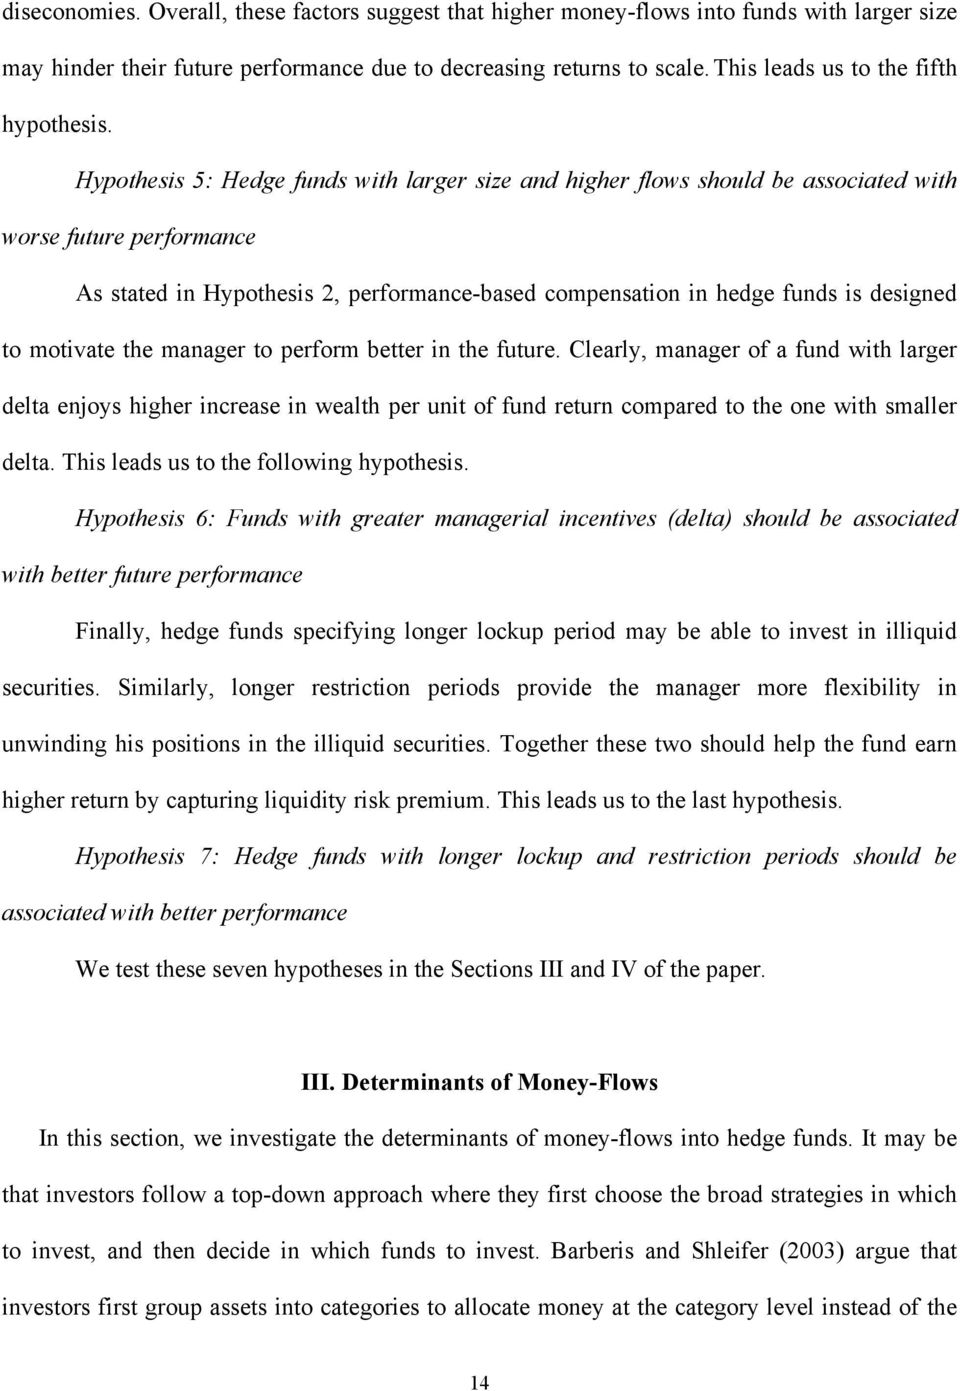 Hypothesis 5: Hedge funds with larger size and higher flows should be associated with worse future performance As stated in Hypothesis 2, performance-based compensation in hedge funds is designed to